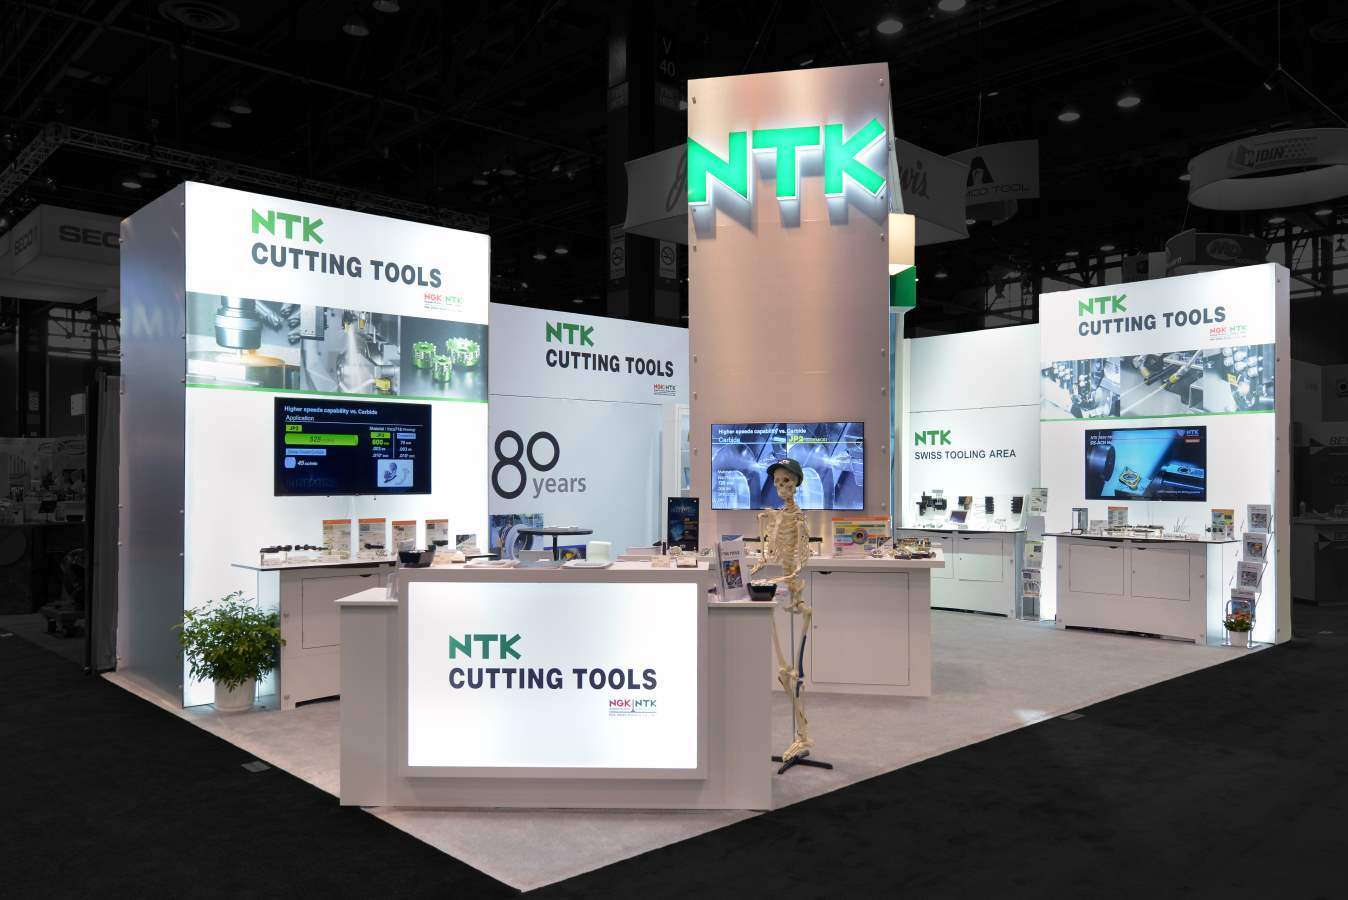 Camera Exterieur Samsung 10 Ways To Make Your Trade Show Booth More Visually Appealing